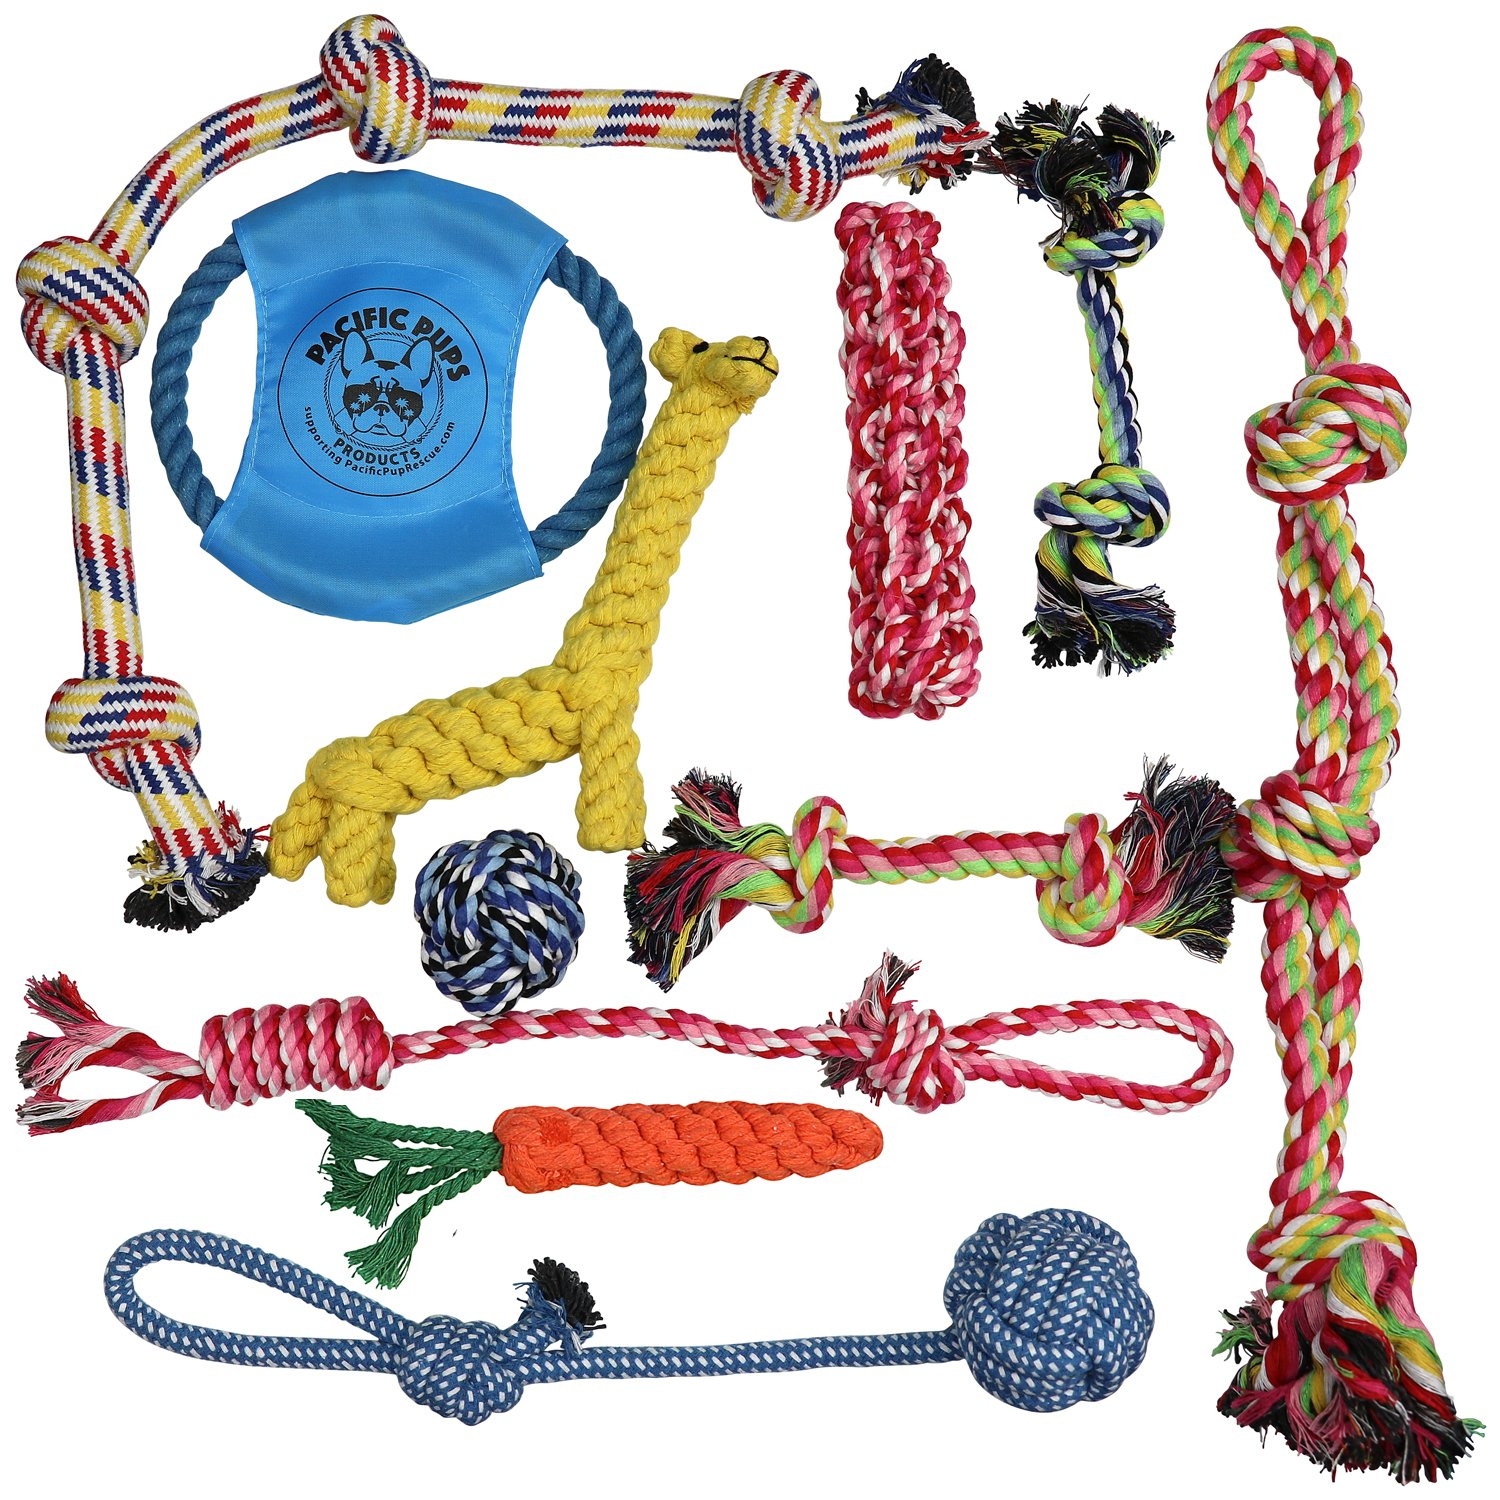 Pacific Pups Products supporting pacificpuprescue.com Dog Rope Toys for Aggressive Chewers - Set of 11 Nearly Indestructible Dog Toys - Bonus Giraffe Rope Toy - Benefits NONPROFIT Dog Rescue by Pacific Pups Products supporting pacificpuprescue.com